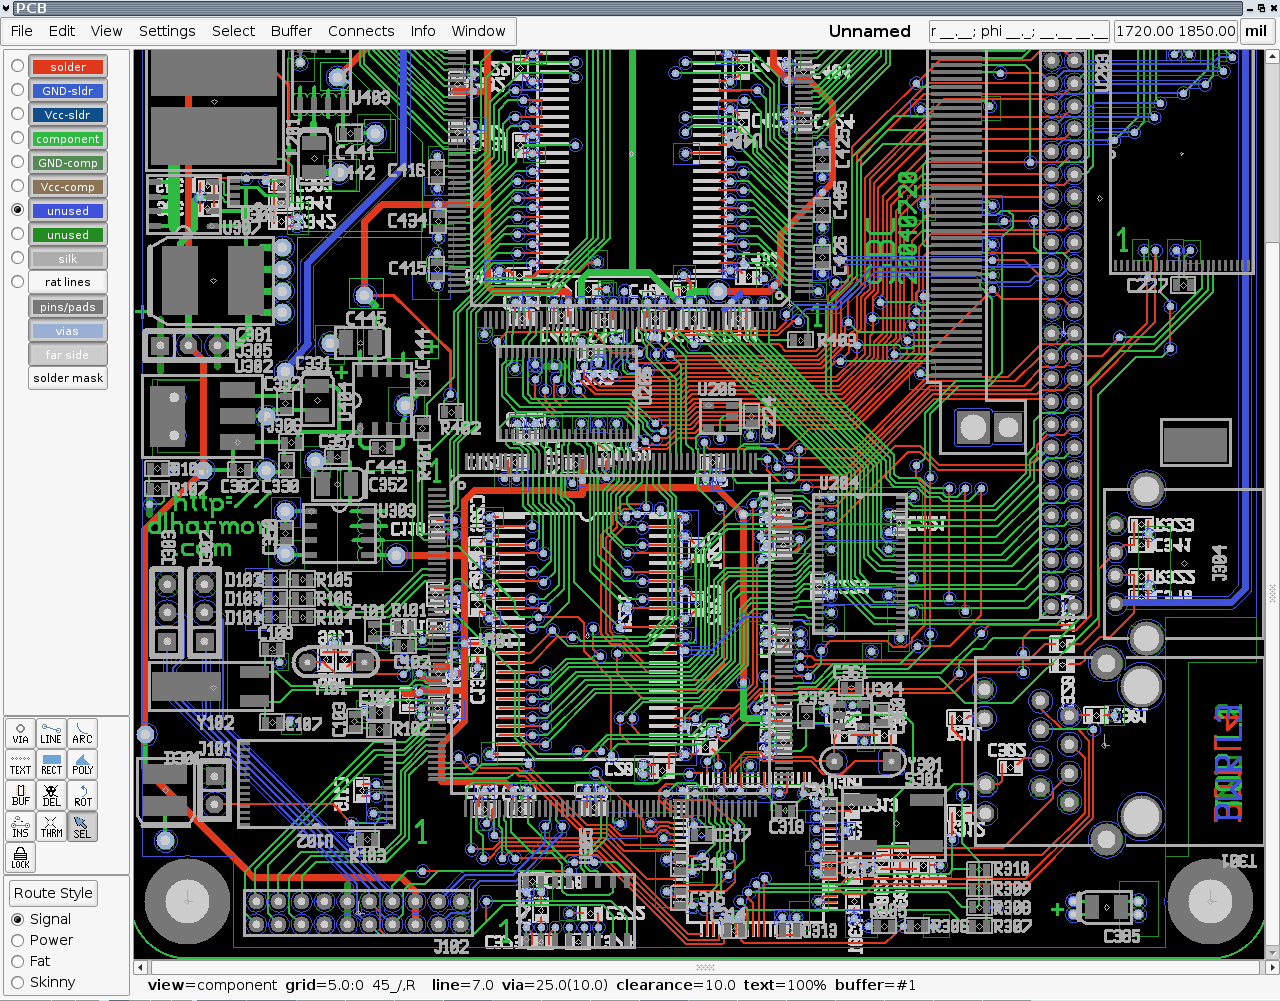 Pcb_dlharmon_screenshot.png